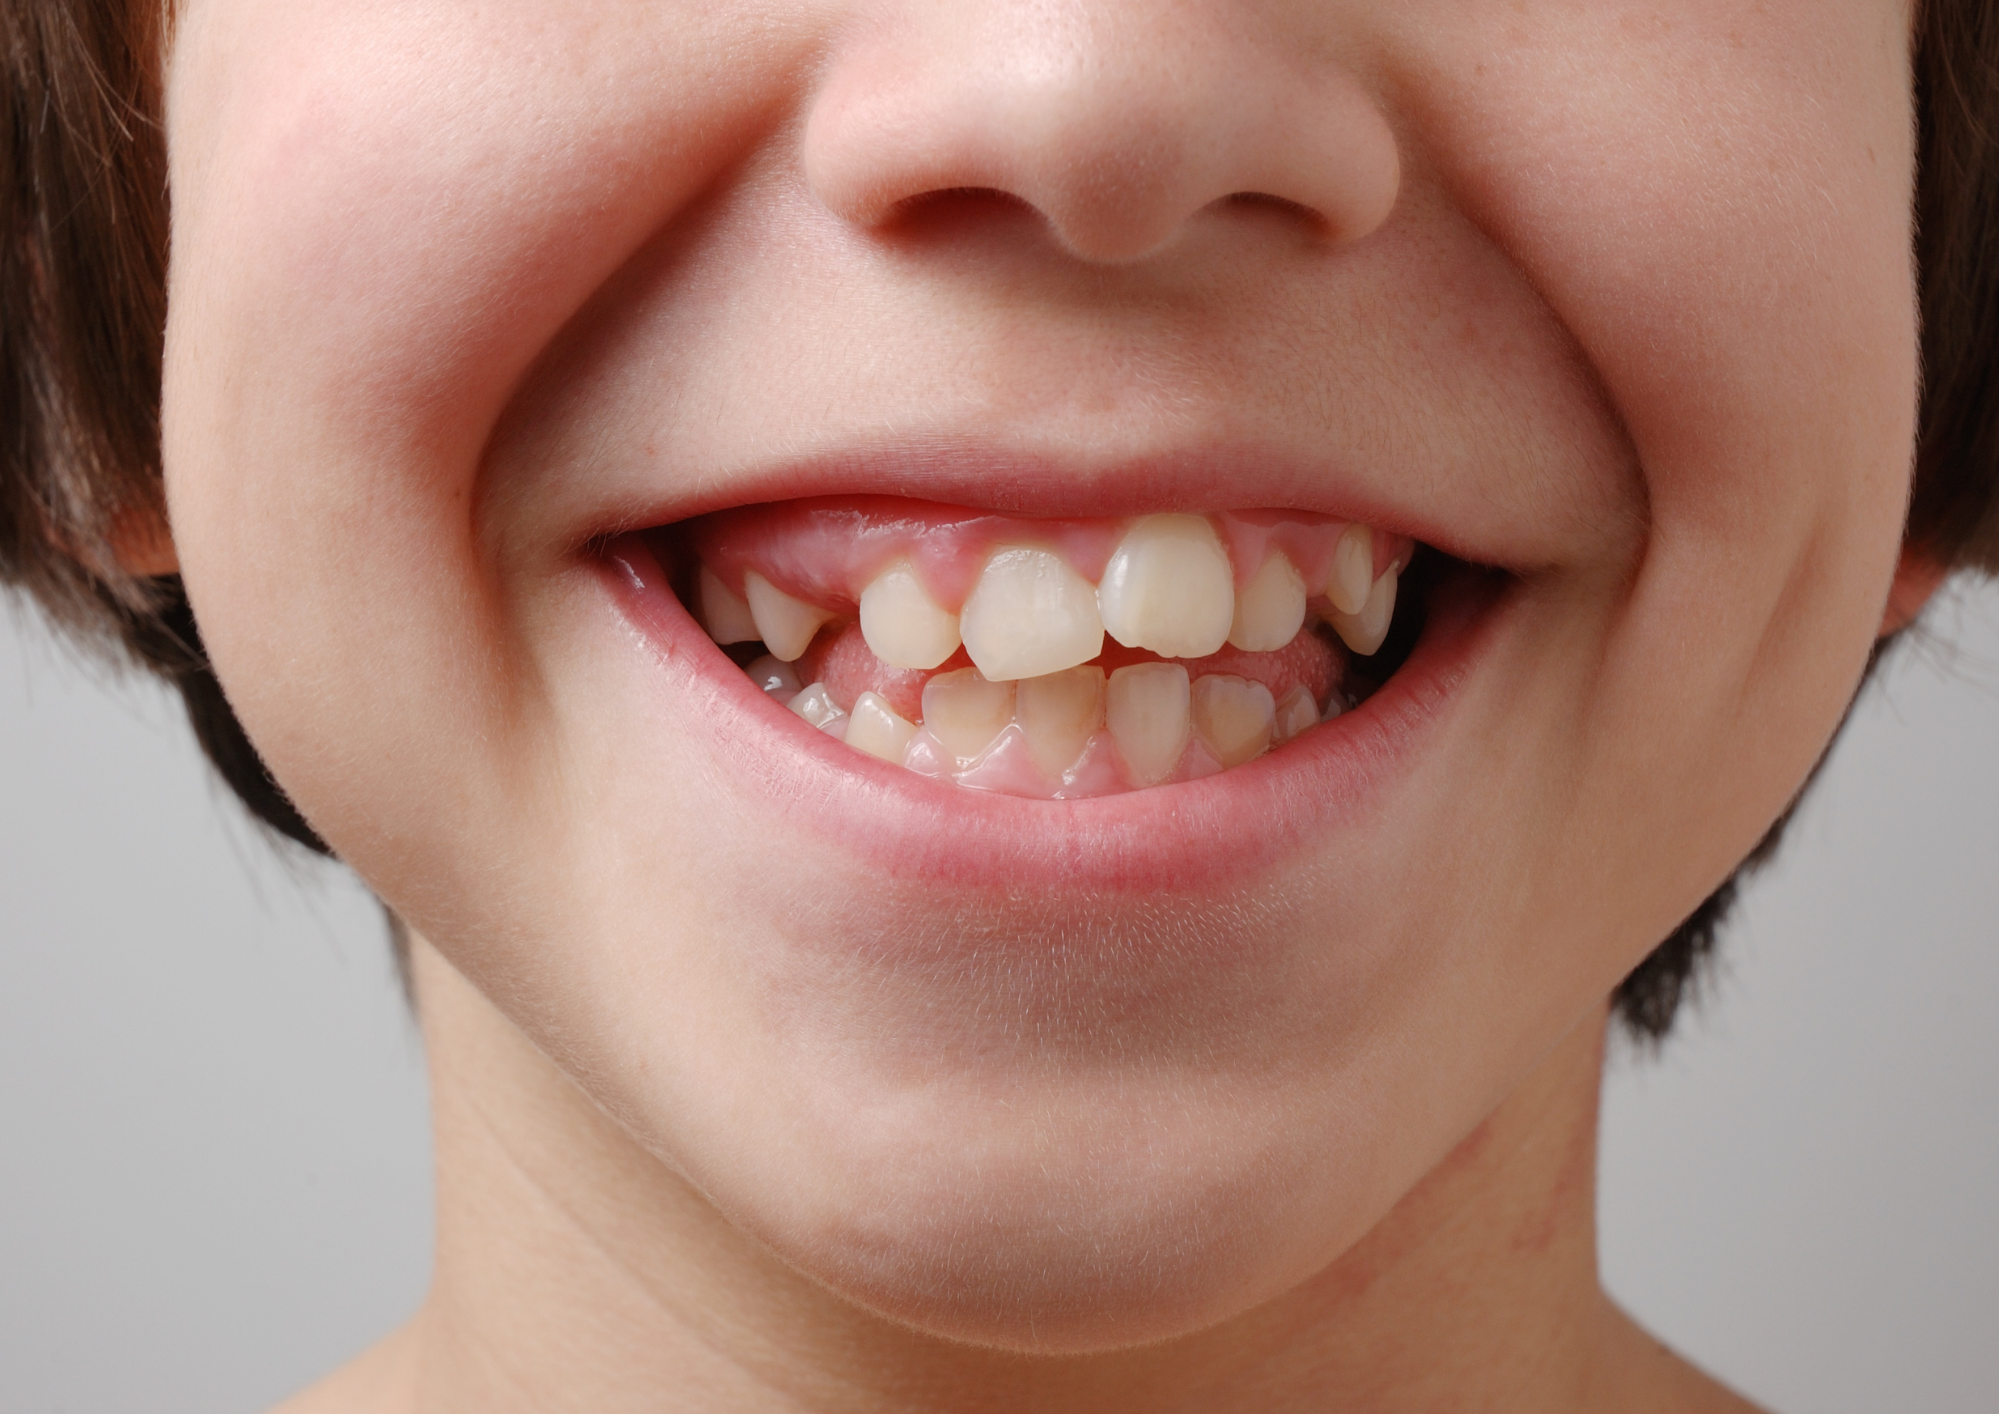 The importance of early intervention and habit correction to address crooked teeth